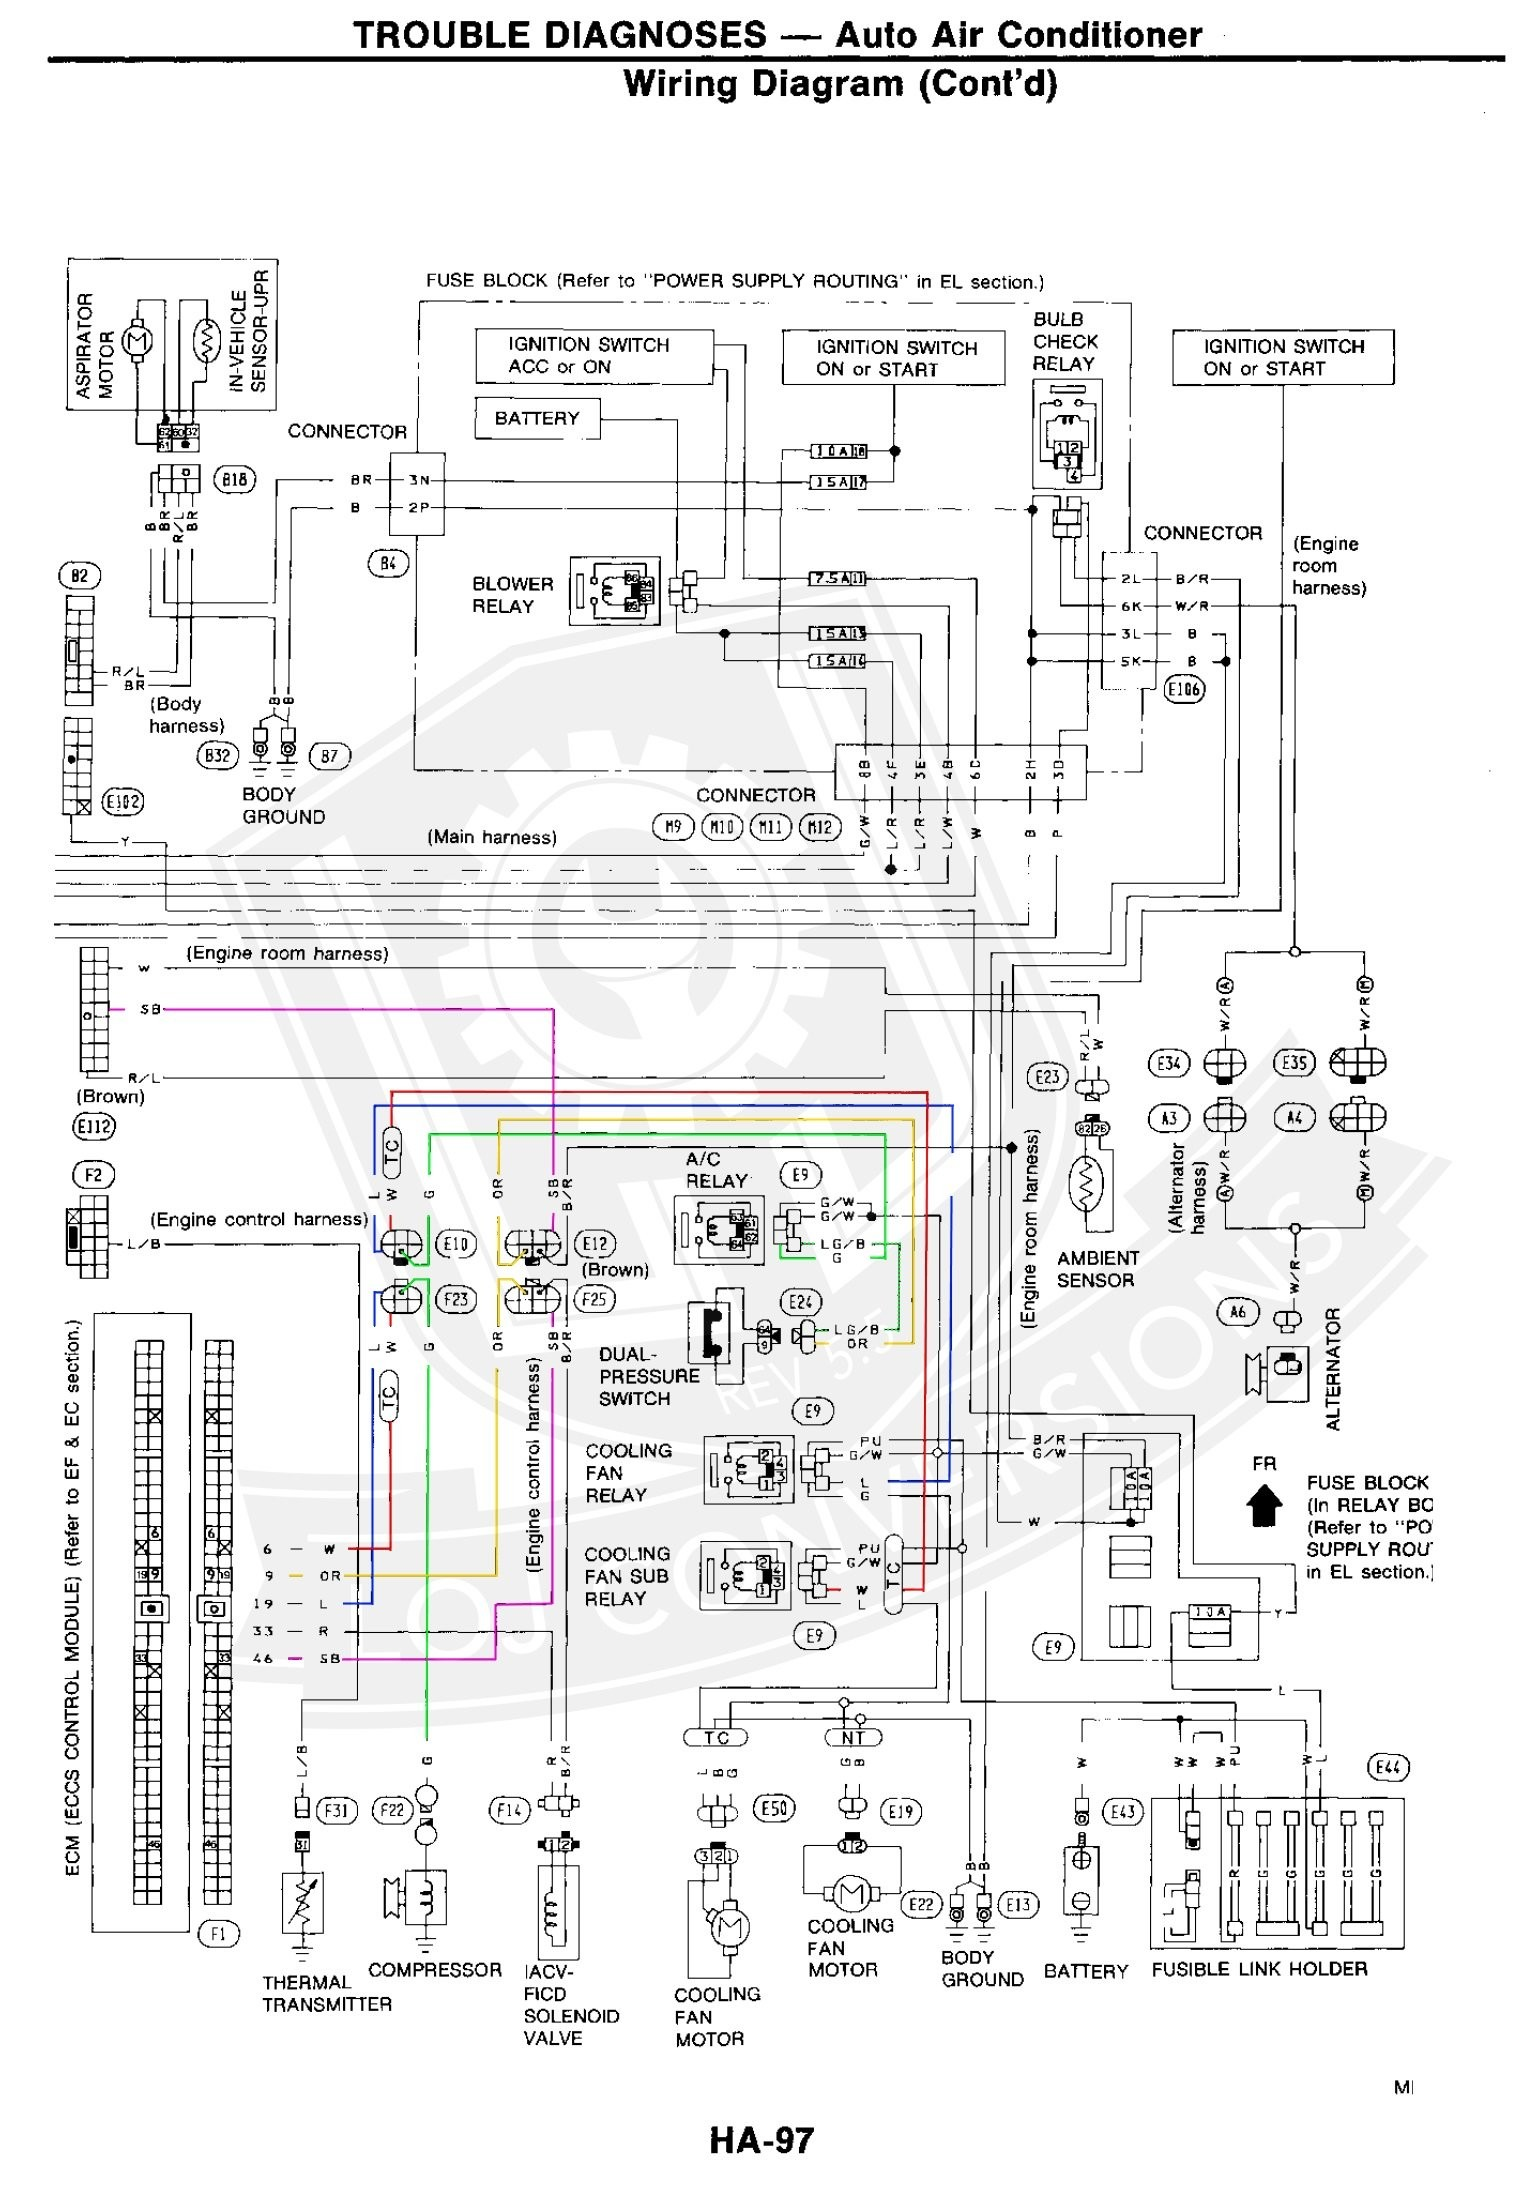 86 300zx Fuse Diagram | Wiring Diagram